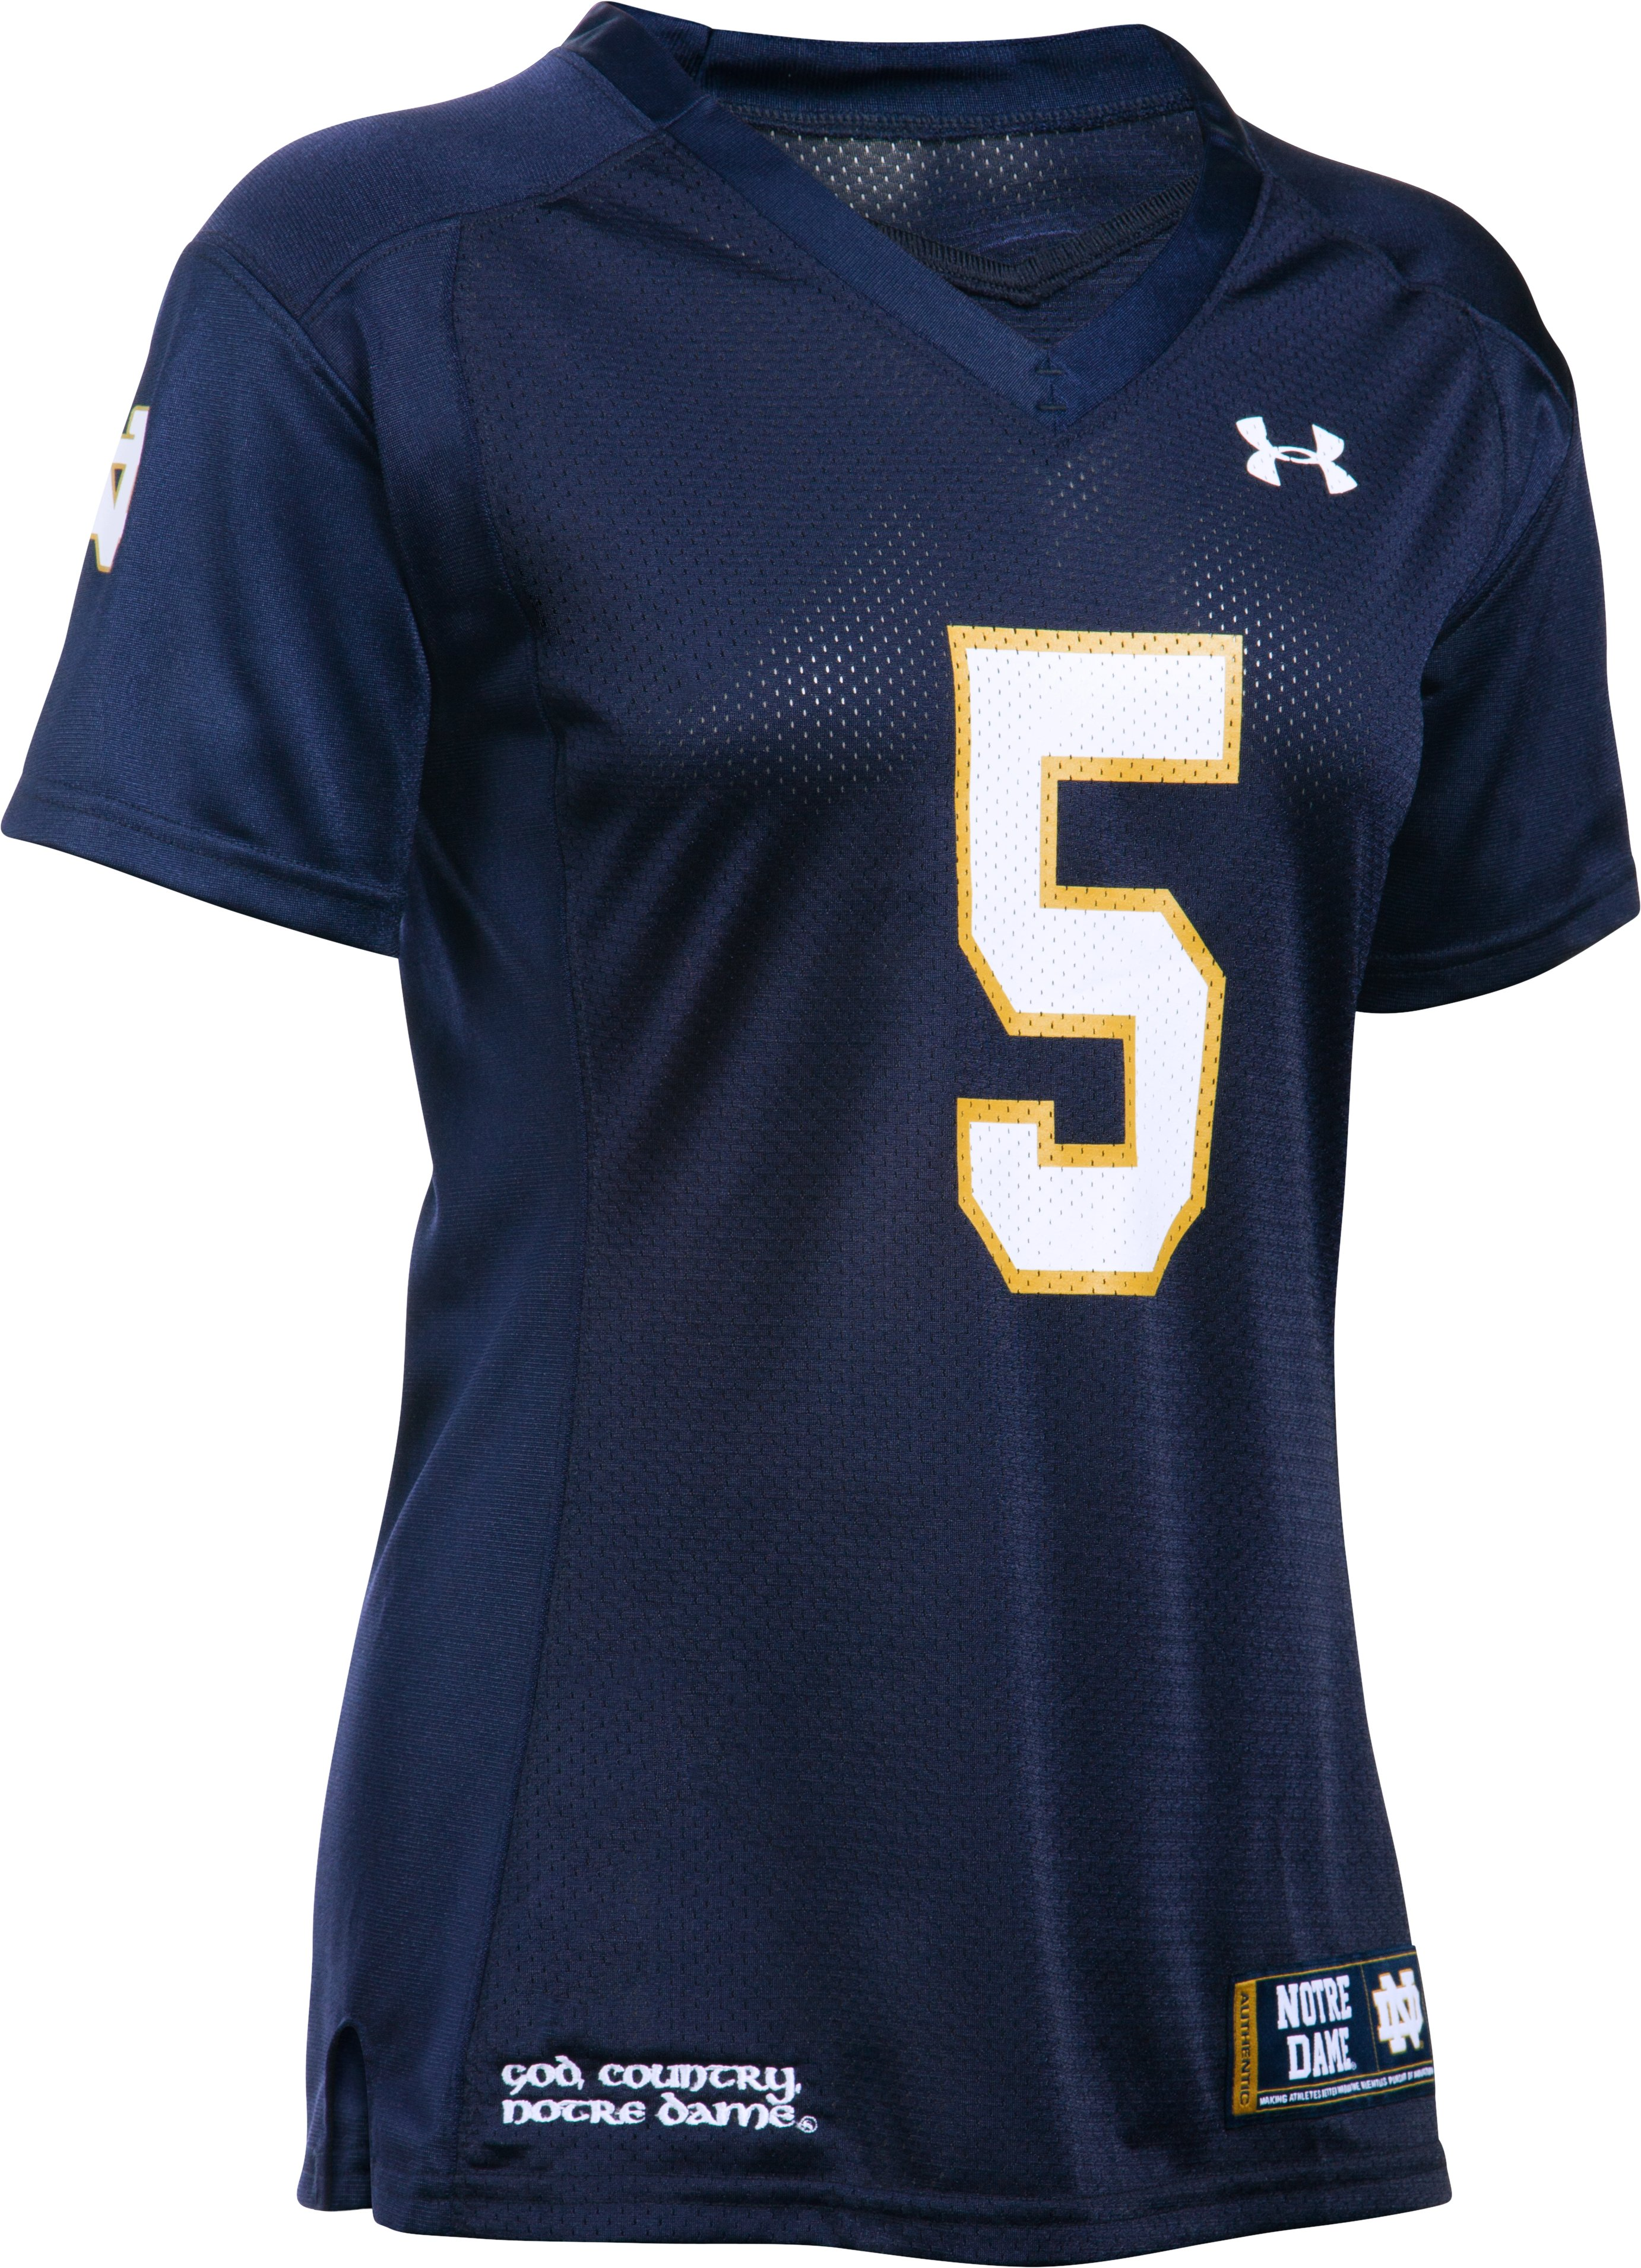 Women's 2015 Notre Dame Replica Jersey - Home , Midnight Navy